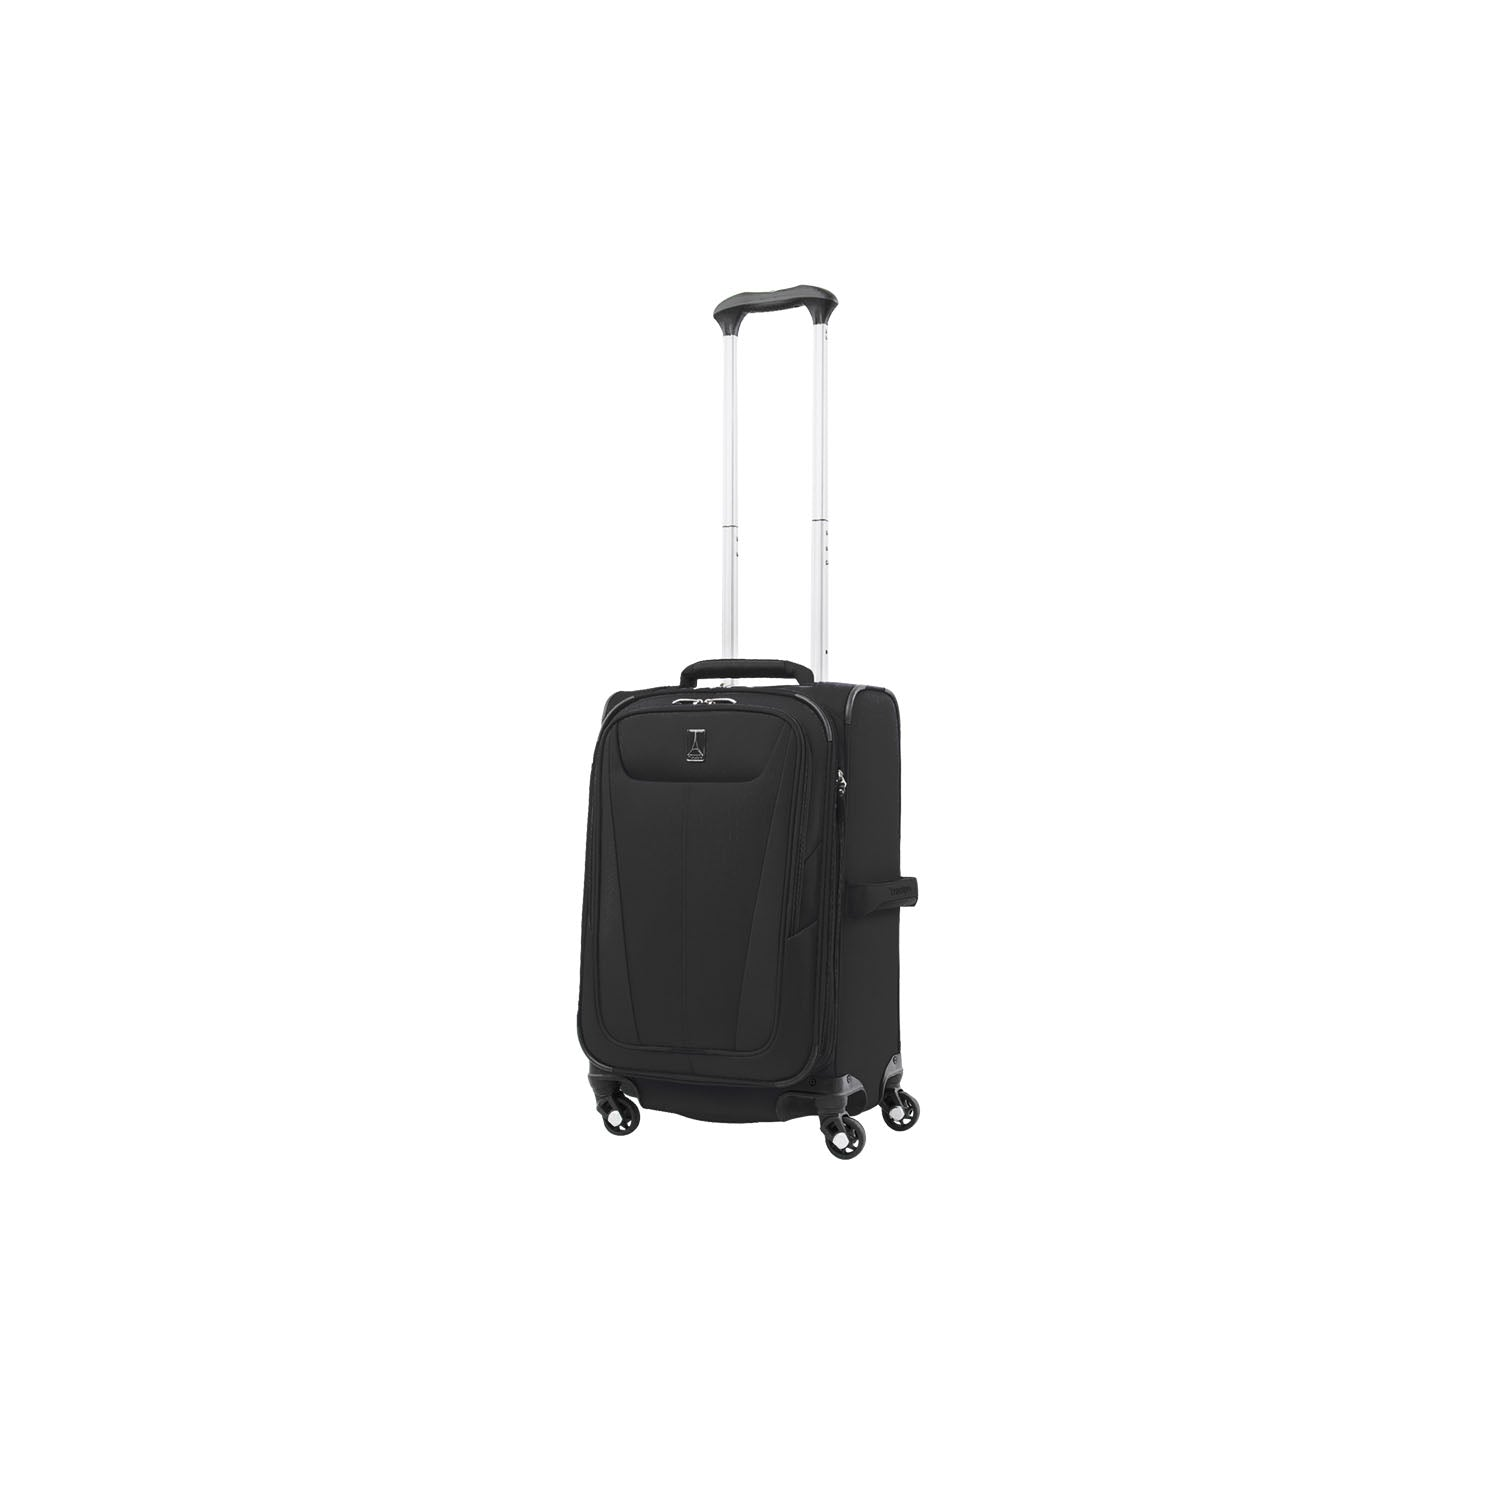 Maxlite®5: In Control - Luggage Set